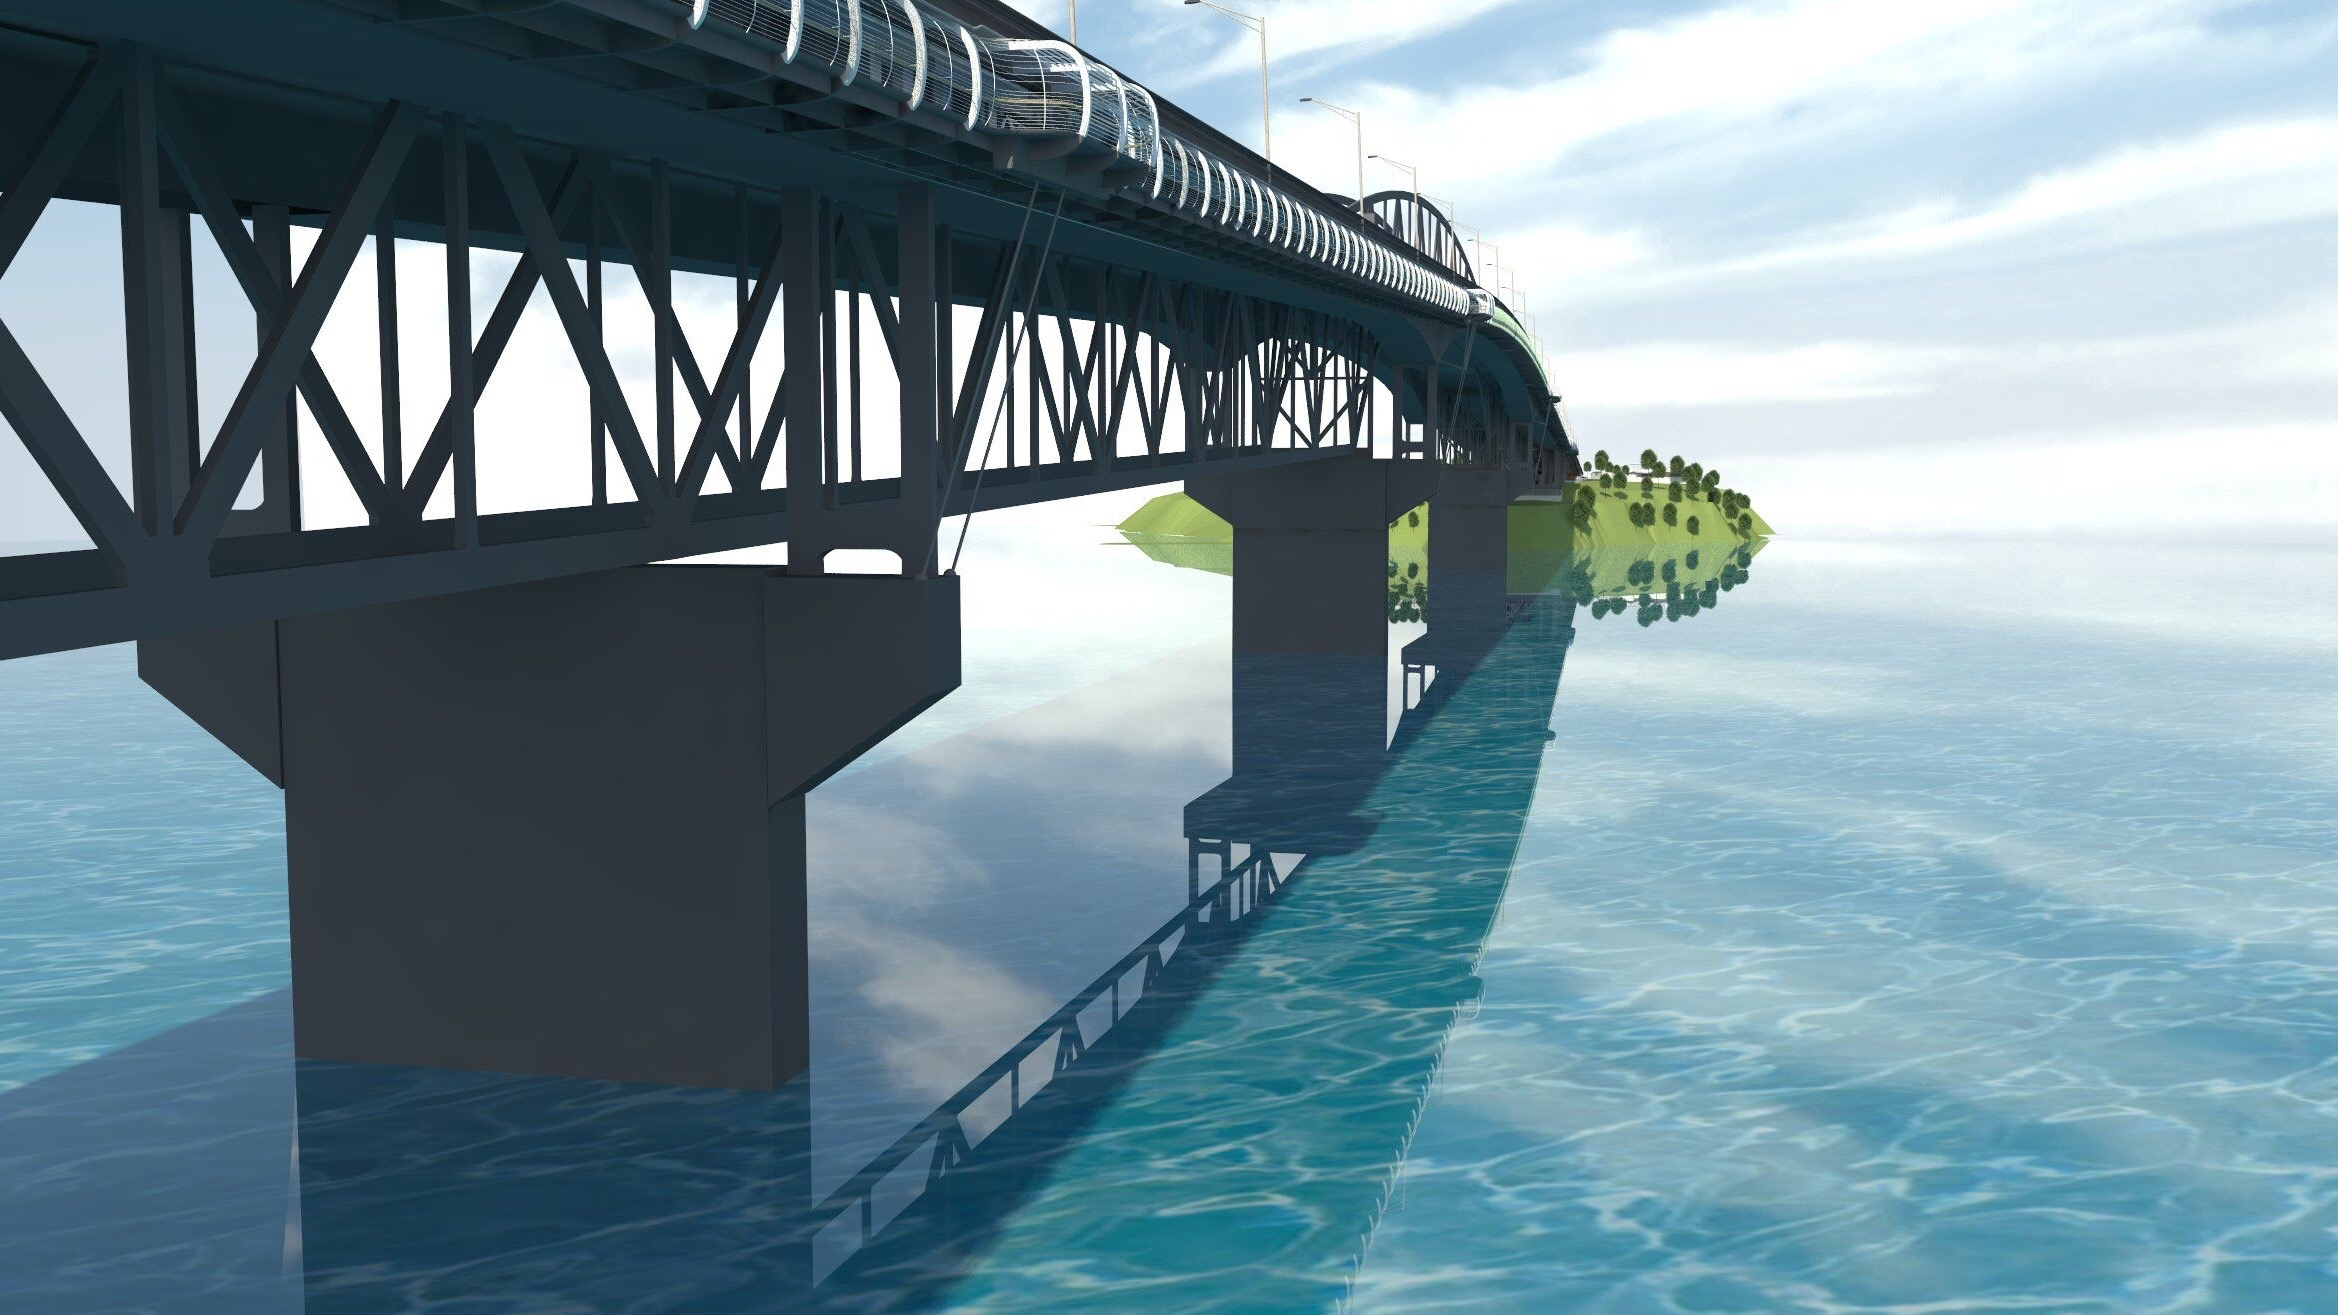 Skypath proposal, Auckland Harbour Bridge  Image: http://www.skypath.org.nz